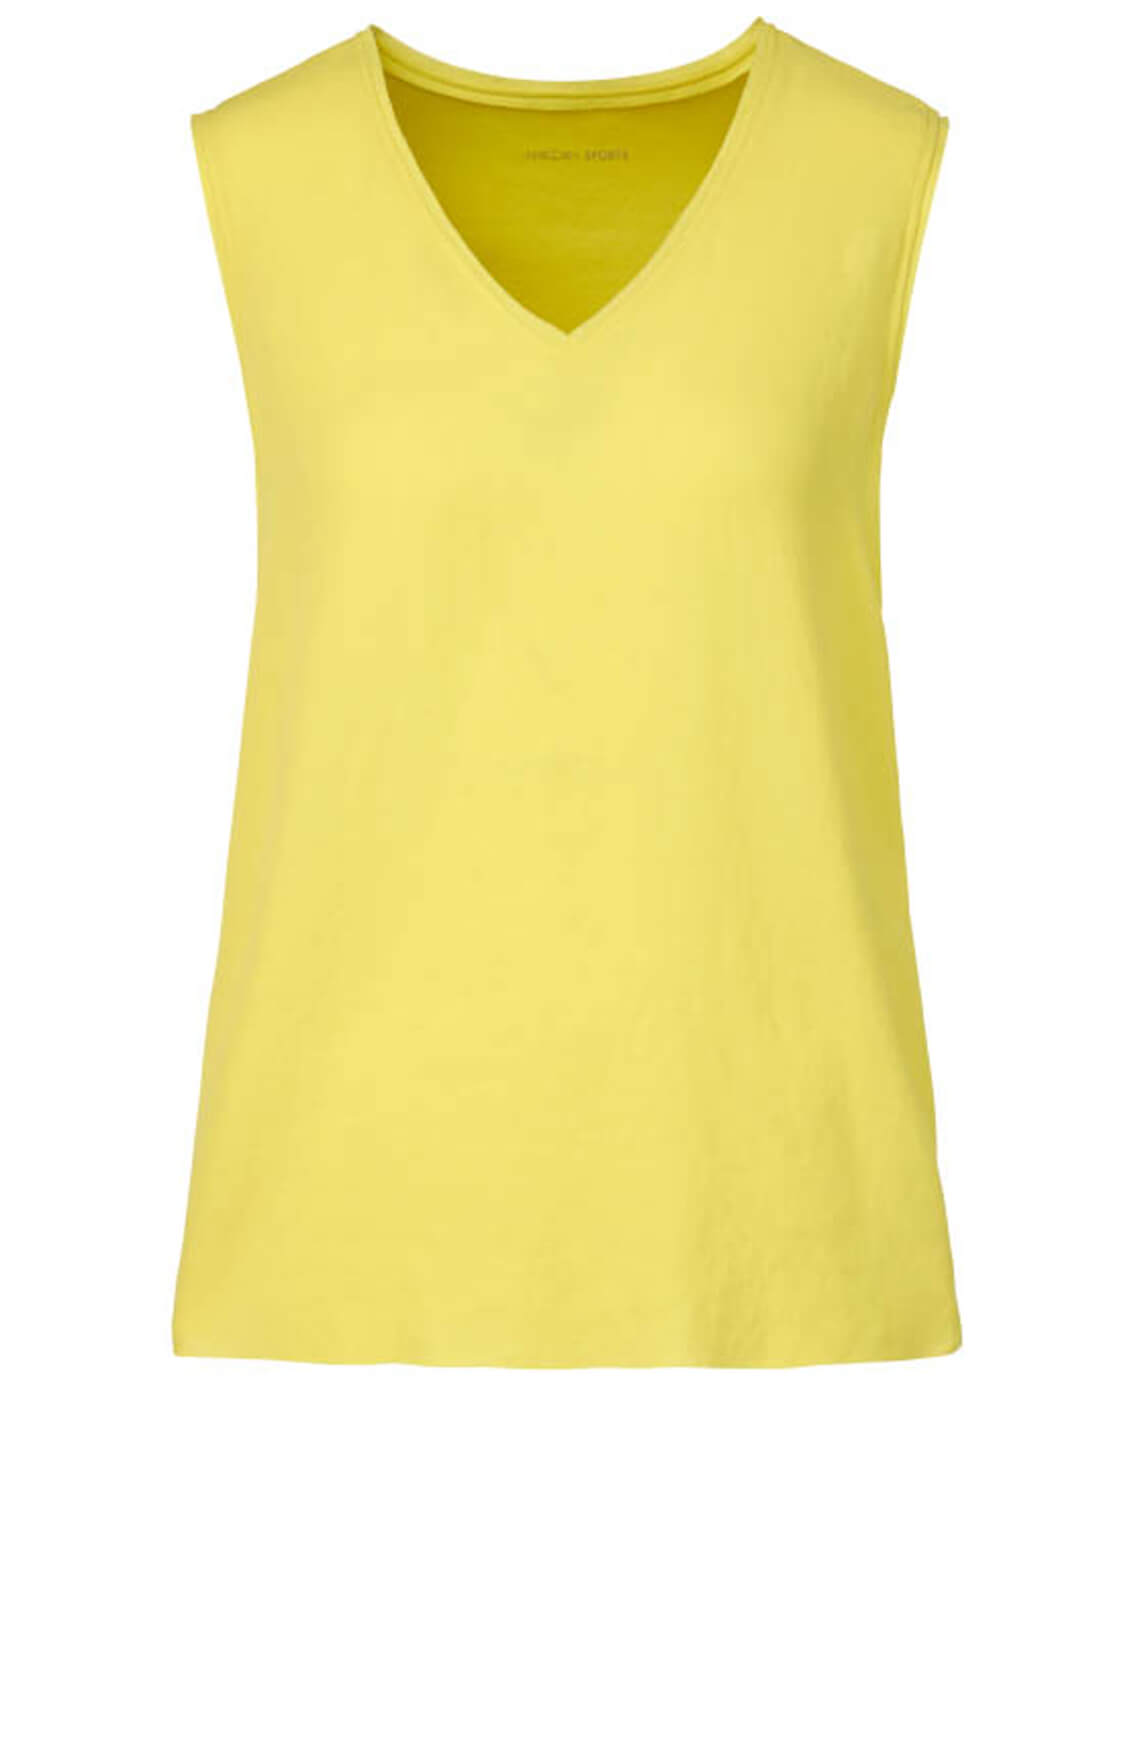 Marccain Sports Dames Materiaalmix top geel